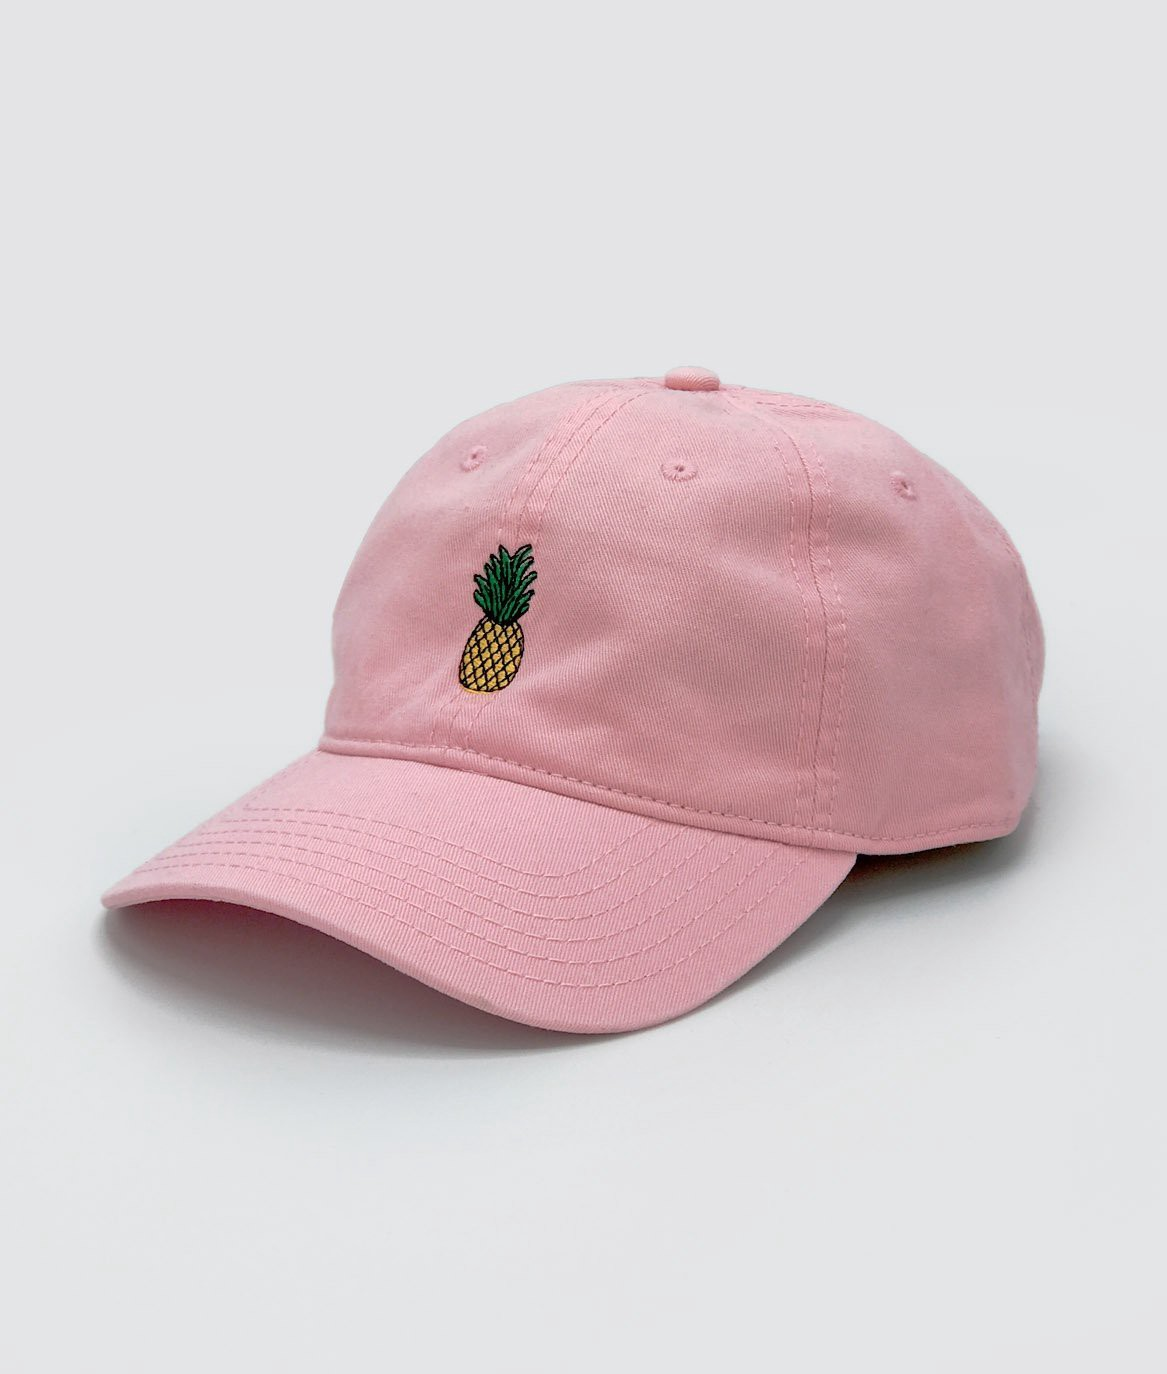 b8523569e9 HUMMINGBIRD Hat - Embroidered Men Women Wildlife Bird Baseball Cap - Price  Embroidery Apparel 24 Different Color Mom Dad Caps Gift Available